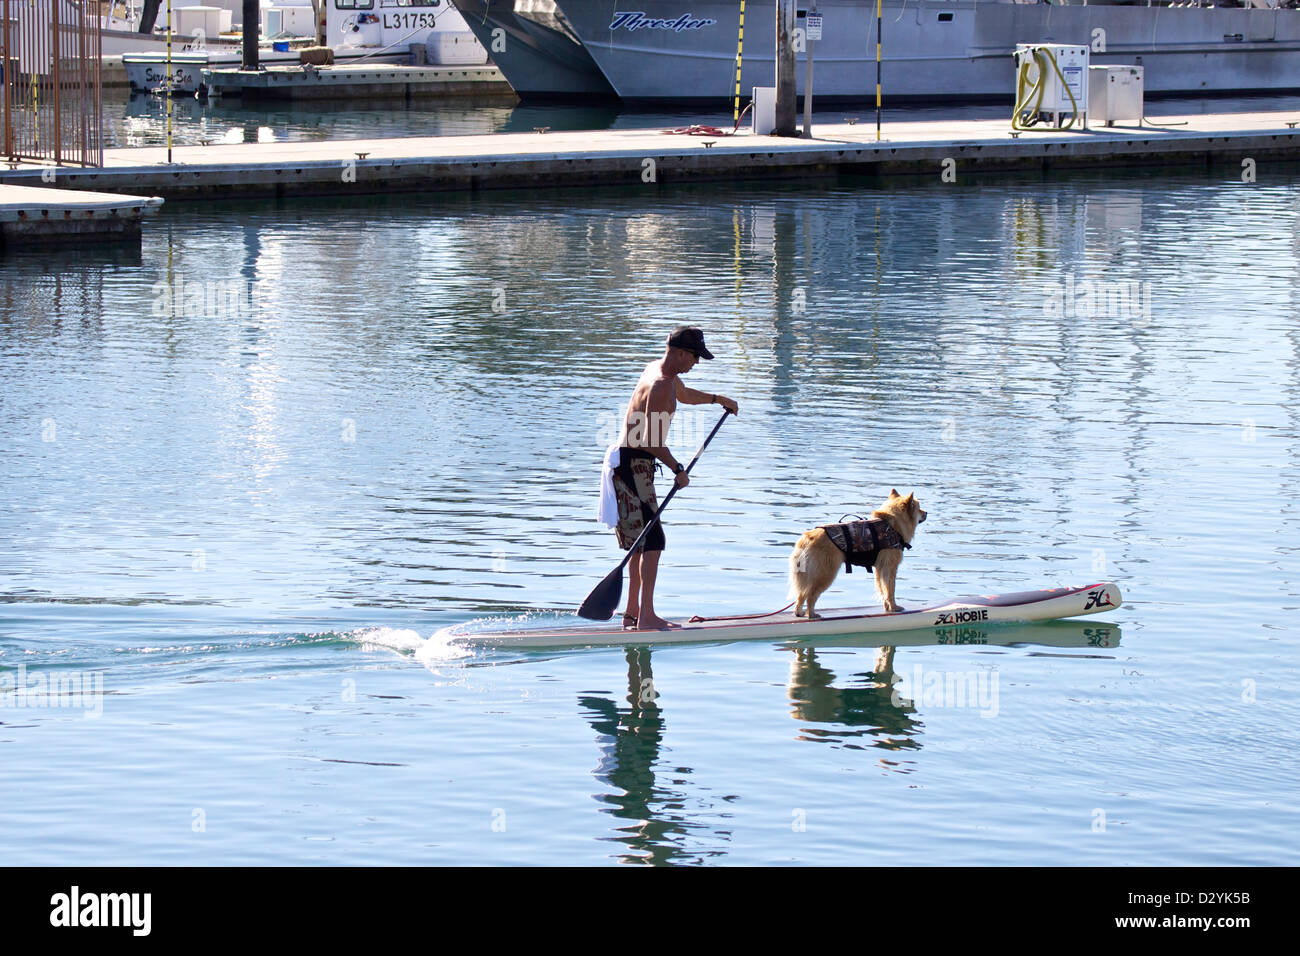 Man paddling a SUP (stand up and paddle) with his dog on the front in Dana point marina southern California - Stock Image